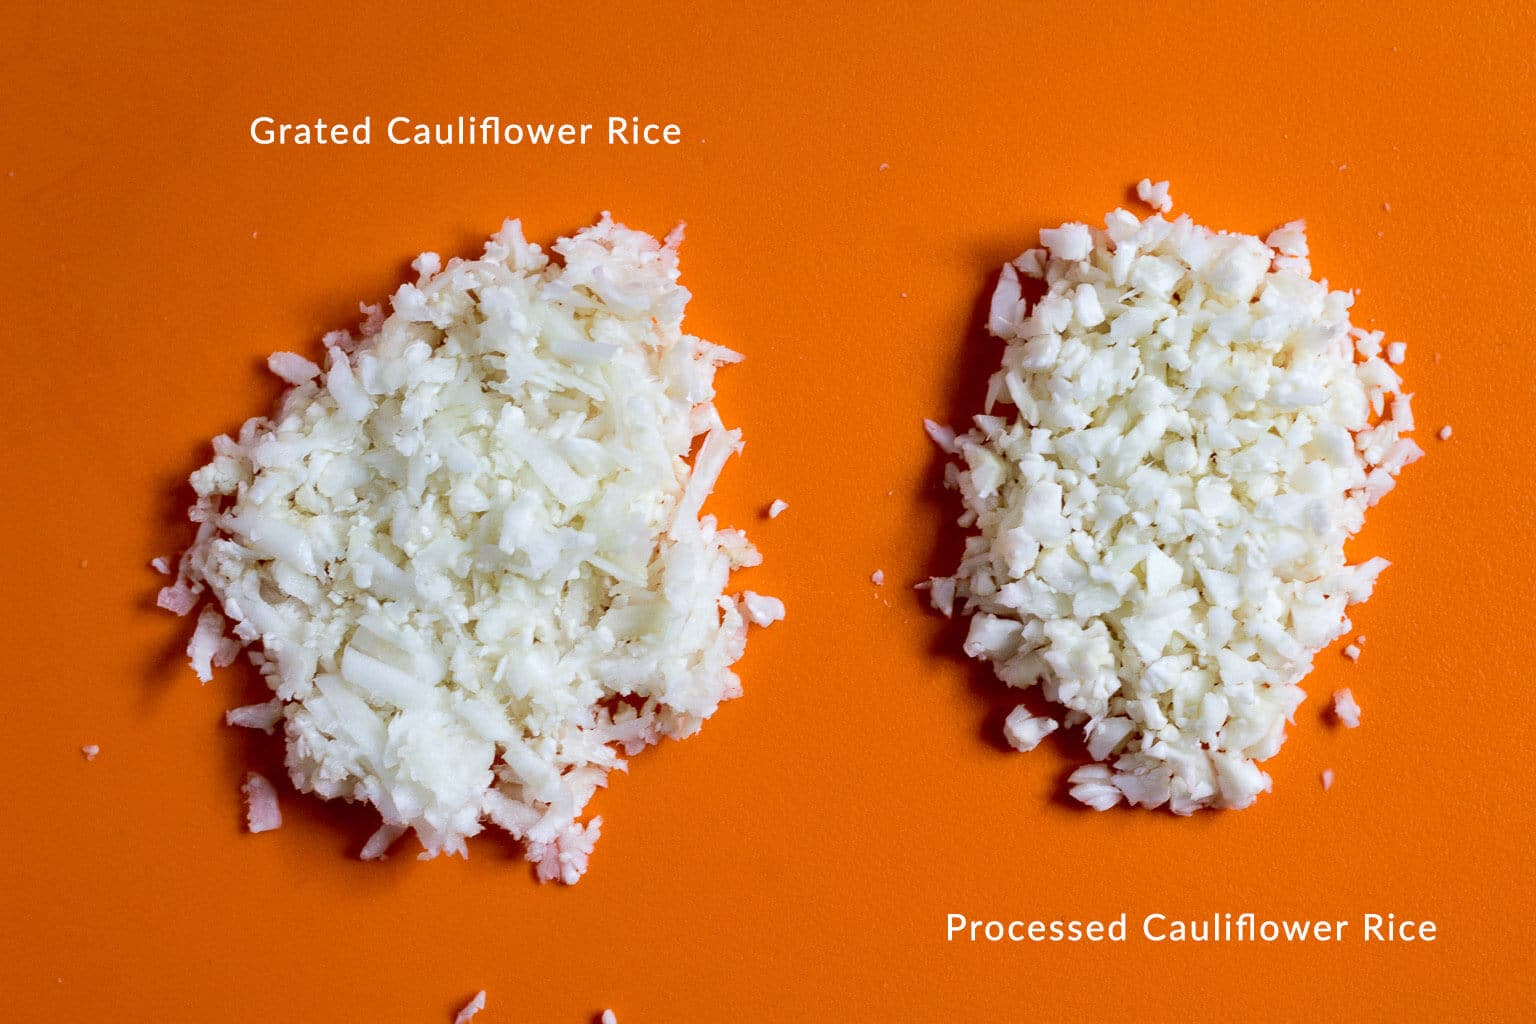 How to make cauliflower rice - difference between grating it and processing it.